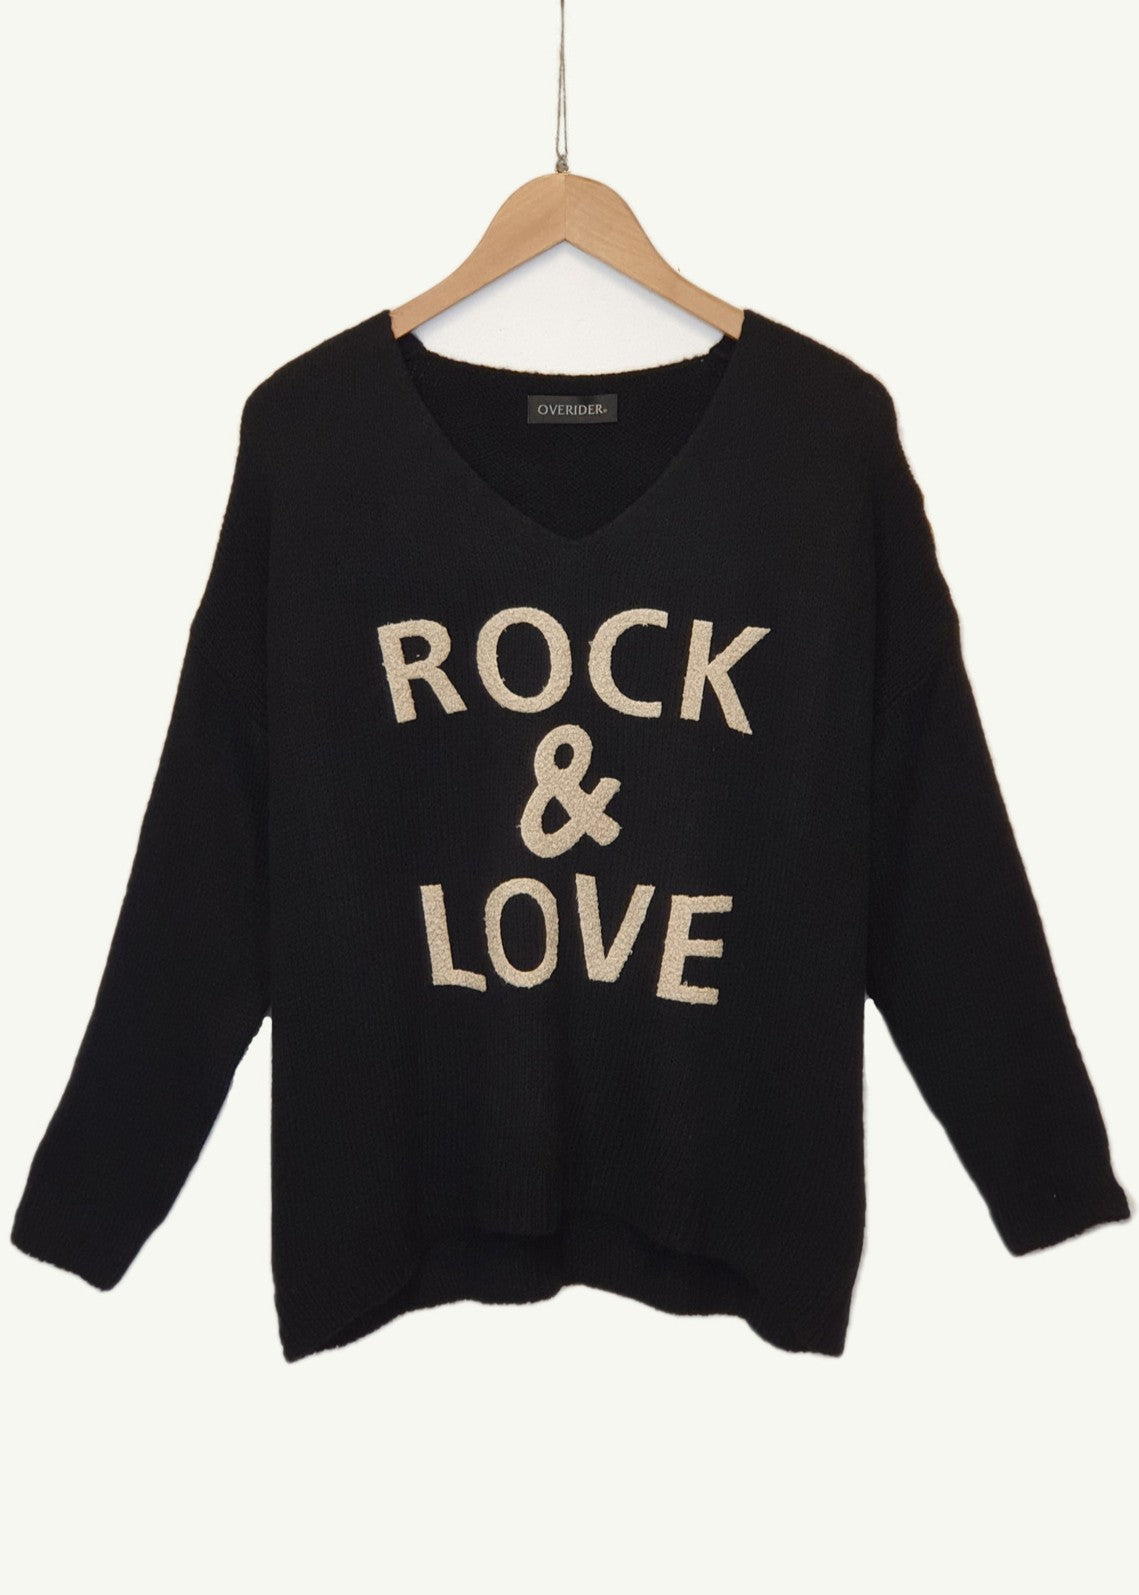 ROCK AND LOVE  - Knitted Jumper - Black